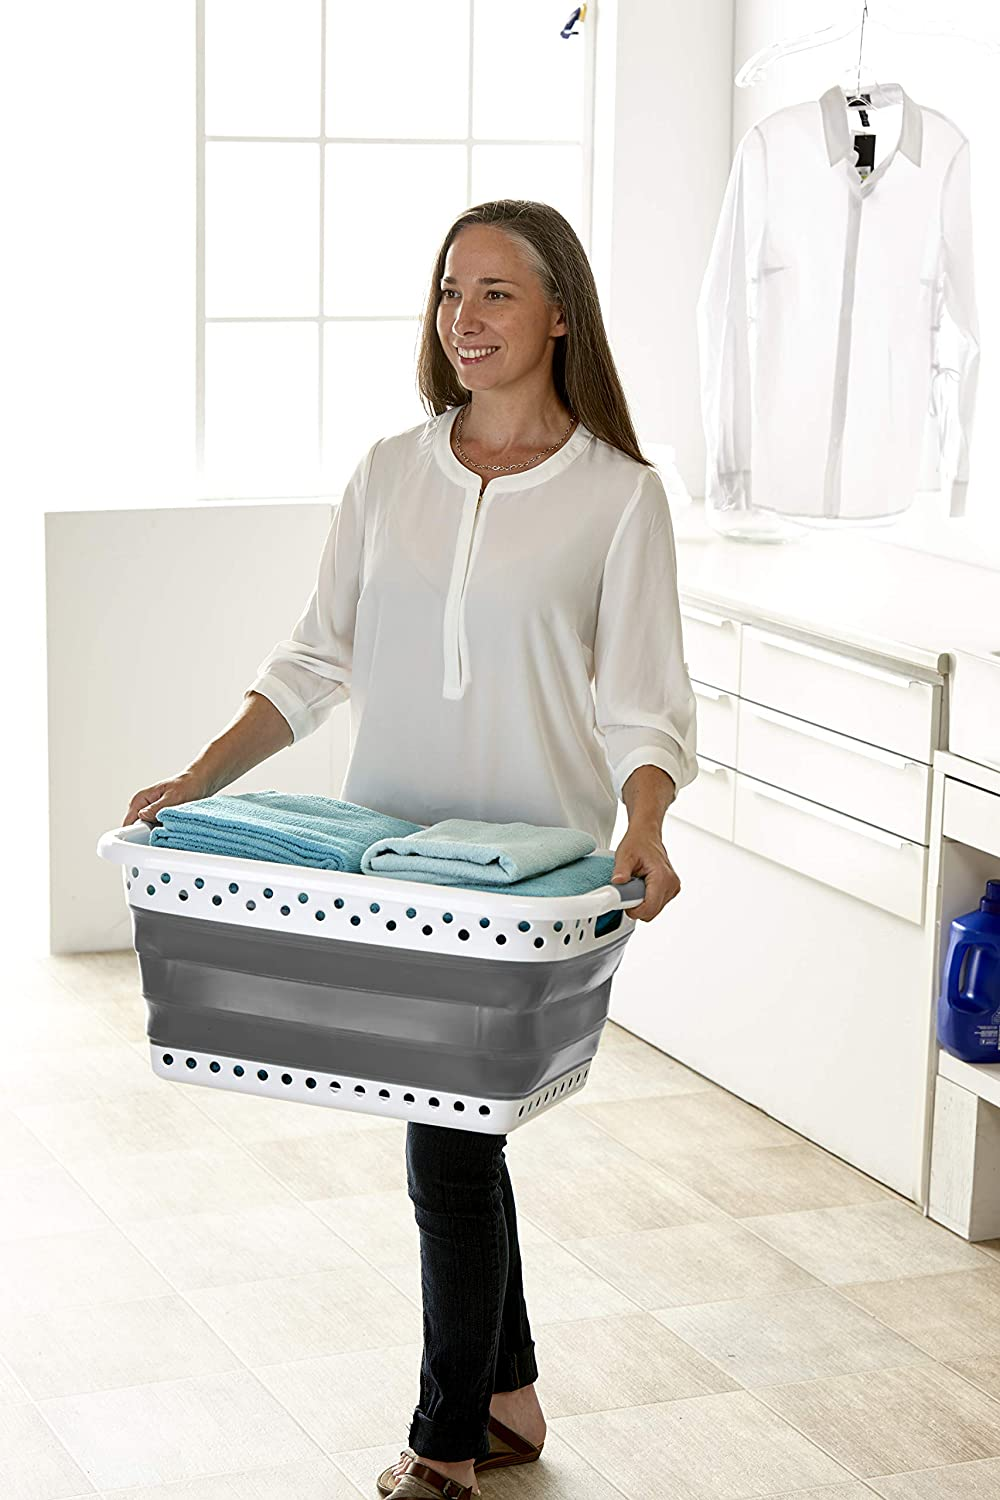 Large Rect-2 Pop /& Load Collapse /& Store Collapsible Basket Ultra-Slim Utility 25 High Dual Handle Rectangular//Folds to 3 in Grey Onyx POP /& Load Laundry